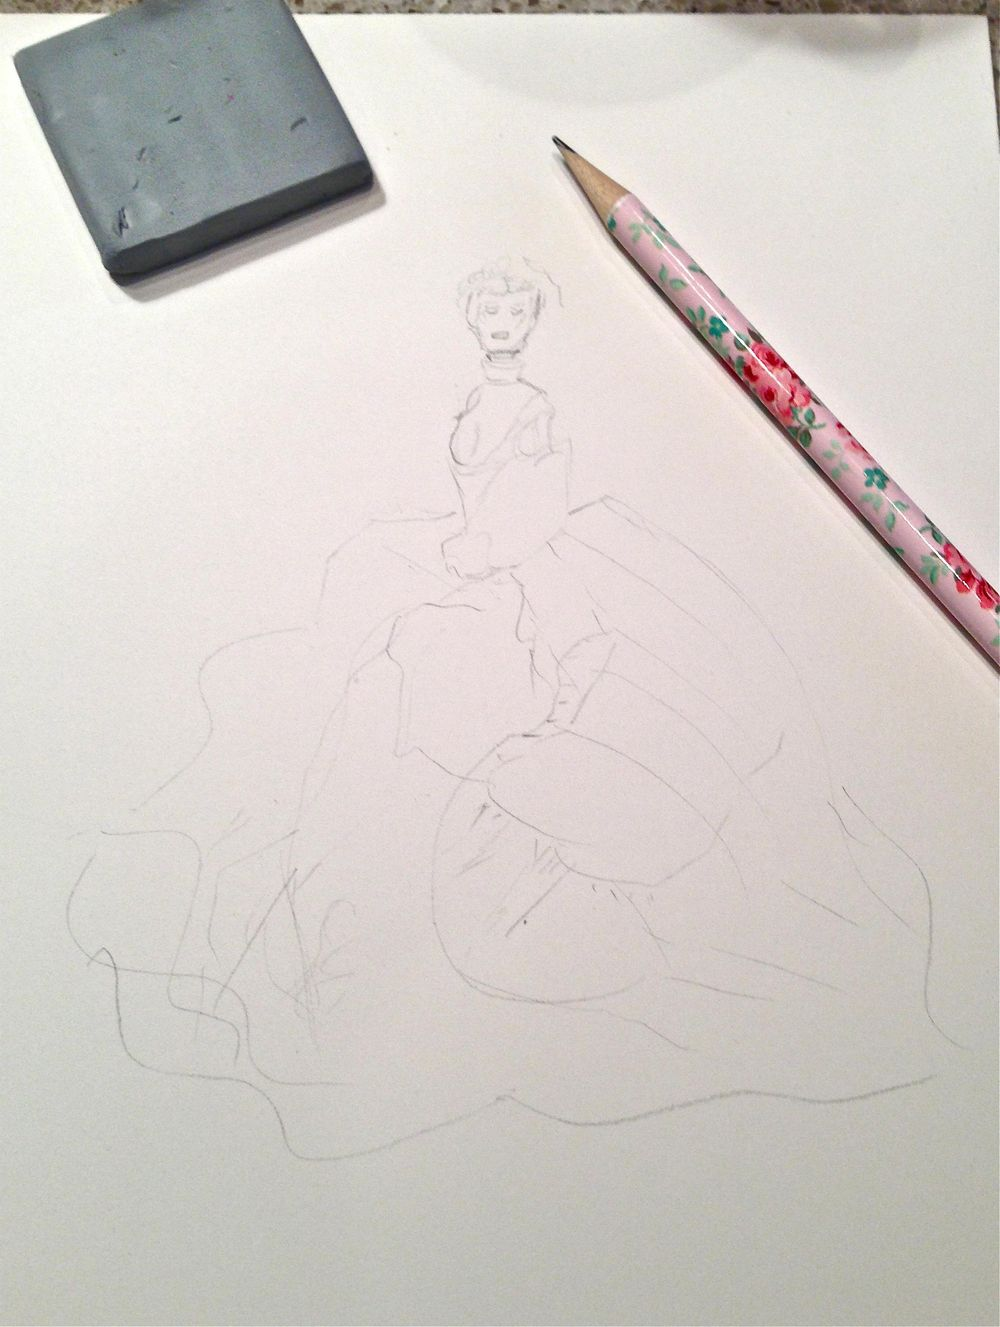 UPDATED WATERCOLOR  - Inspiration Antoinette - image 3 - student project